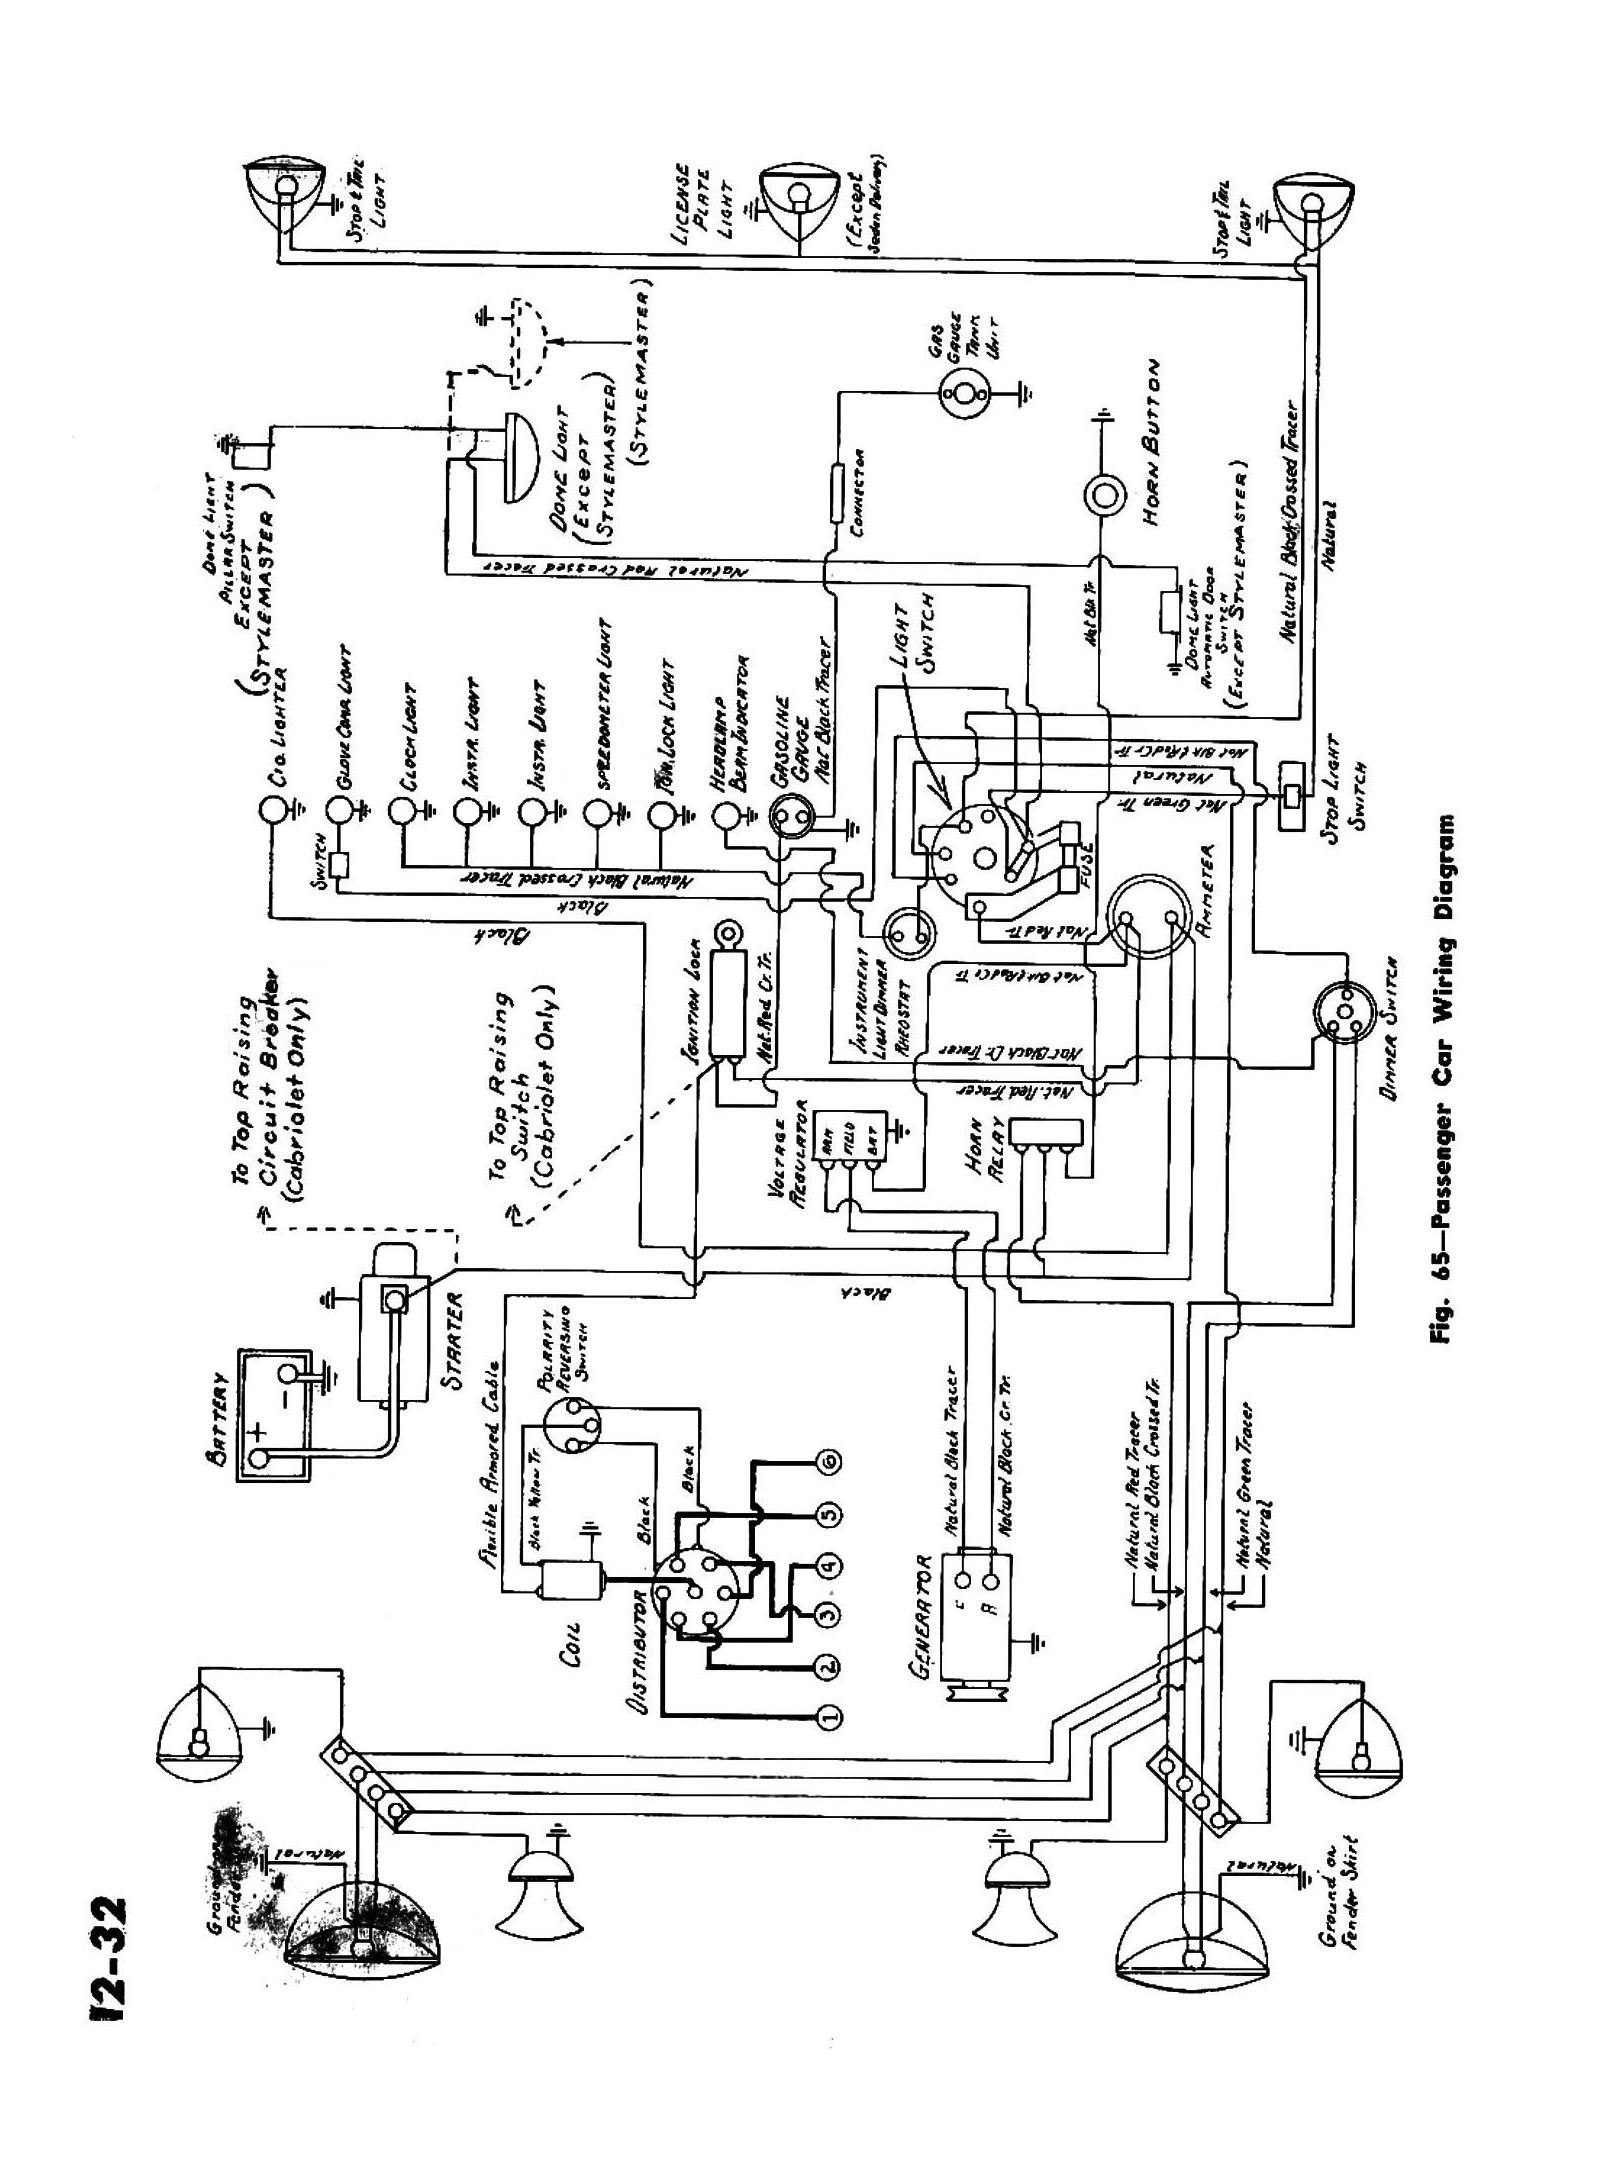 chevy wiring diagrams rh chevy oldcarmanualproject com circuit diagram for car battery charger circuit diagram for car battery charger